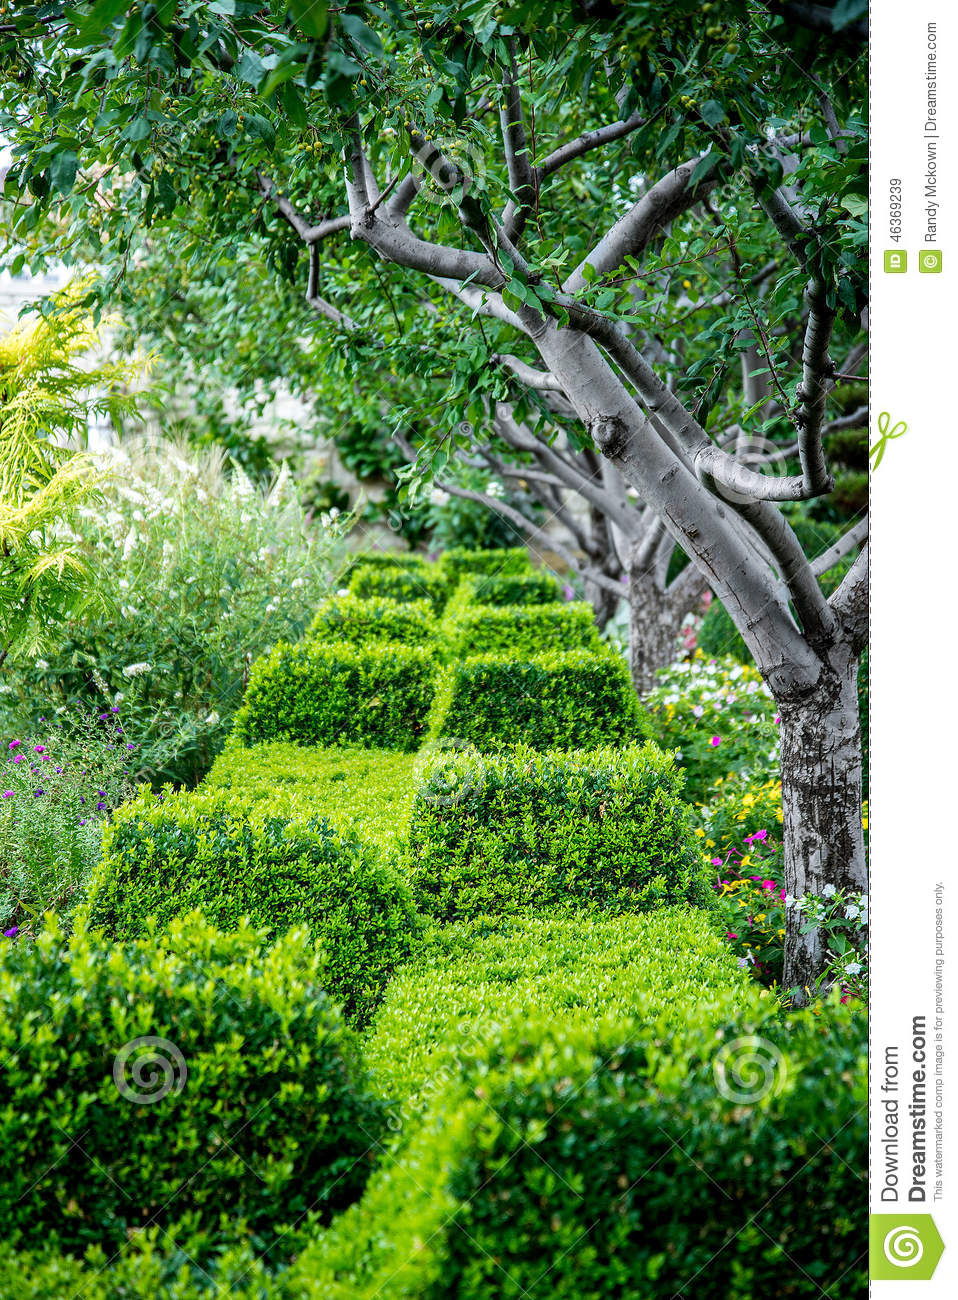 Green bushes shrubs in garden stock photo image 46369239 for Green bushes for landscaping